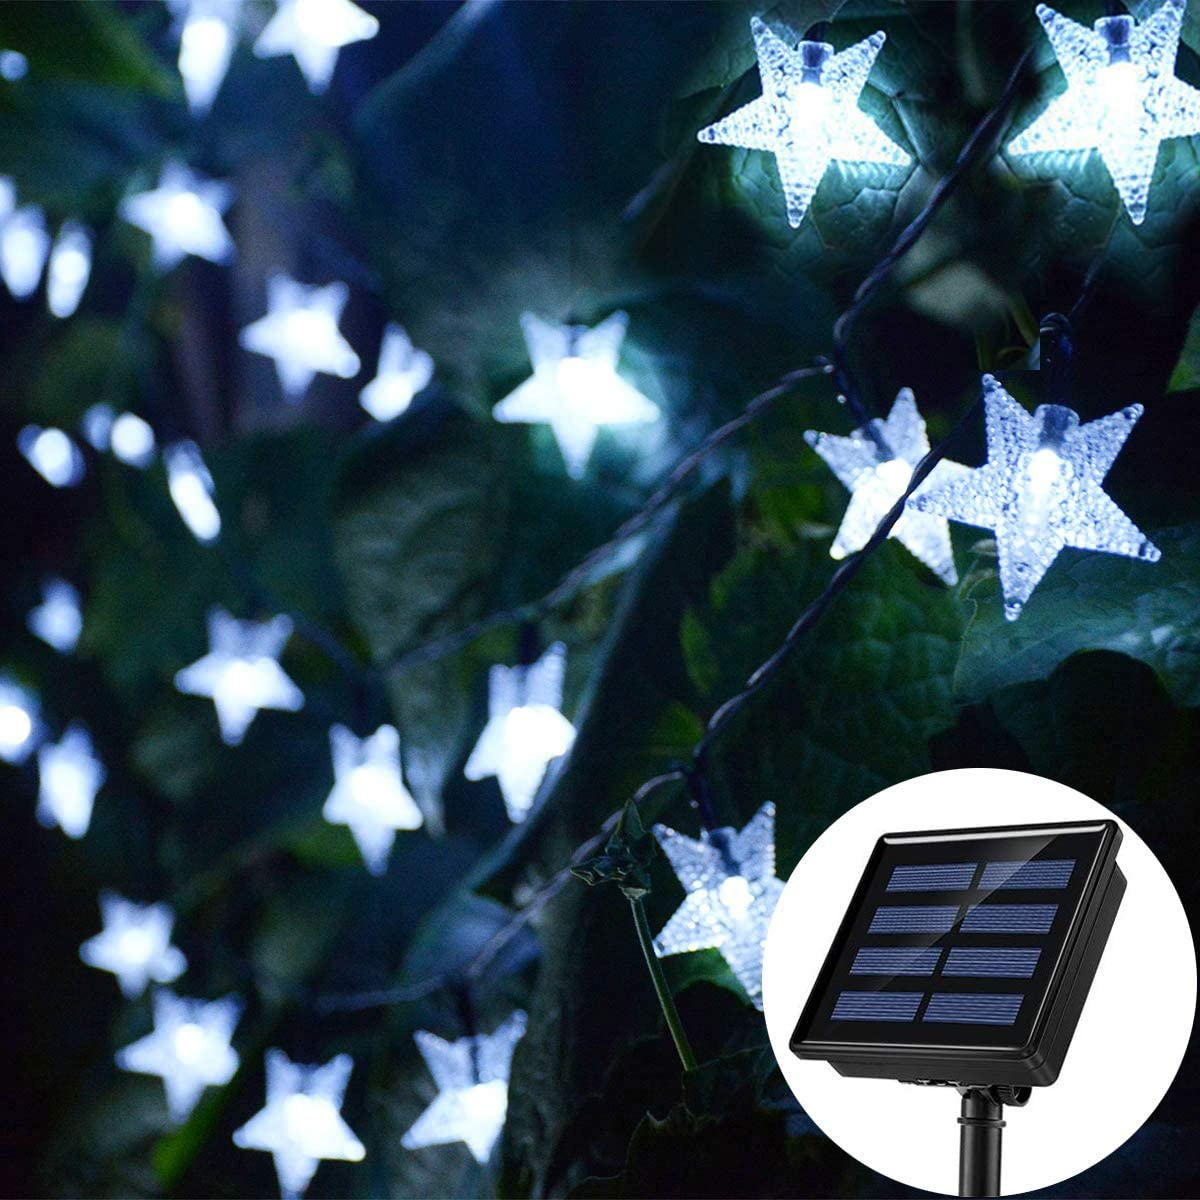 Chasgo Solar String Lights, 30FT 50LED Solar Powered Star Fairy Lights, Waterproof Outdoor LED Star Lights for Christmas Tree Garden Backyard Patio Balcony Camping Tent Decor